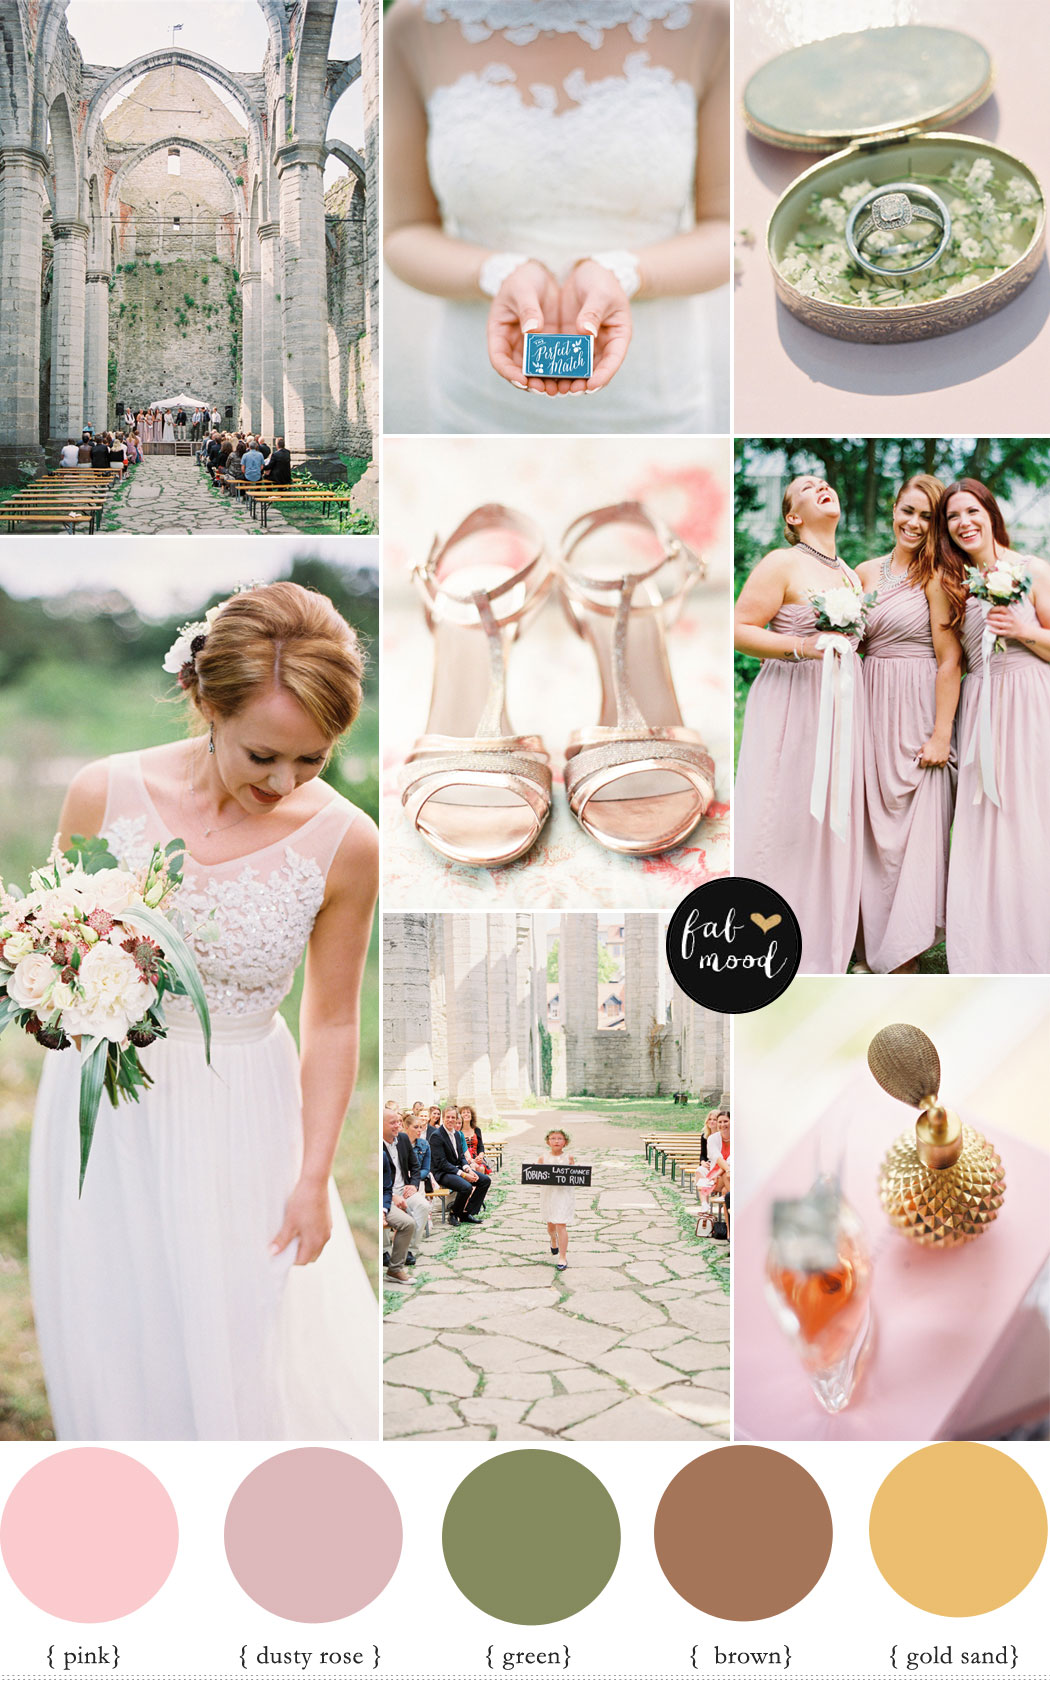 Earth tone wedding colour - Rustic Summer Wedding | Photography : 2 Brides Photography - 2brides.se Read more www.fabmood.com/rustic-summer-wedding-2-brides-photography